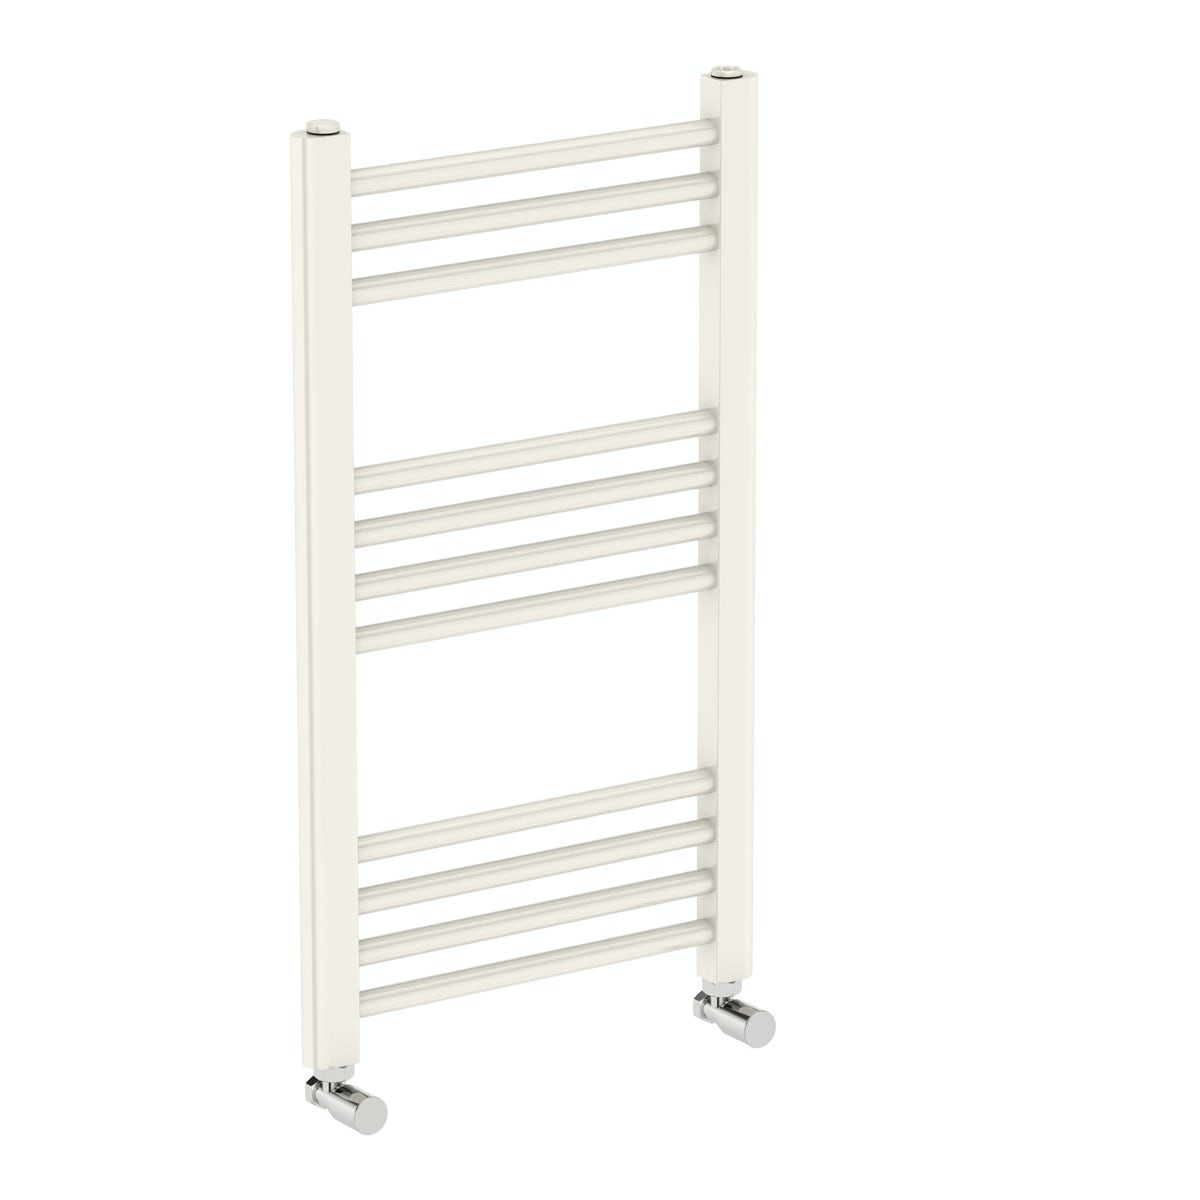 Orchard Eden round white heated towel rail 700 x 400